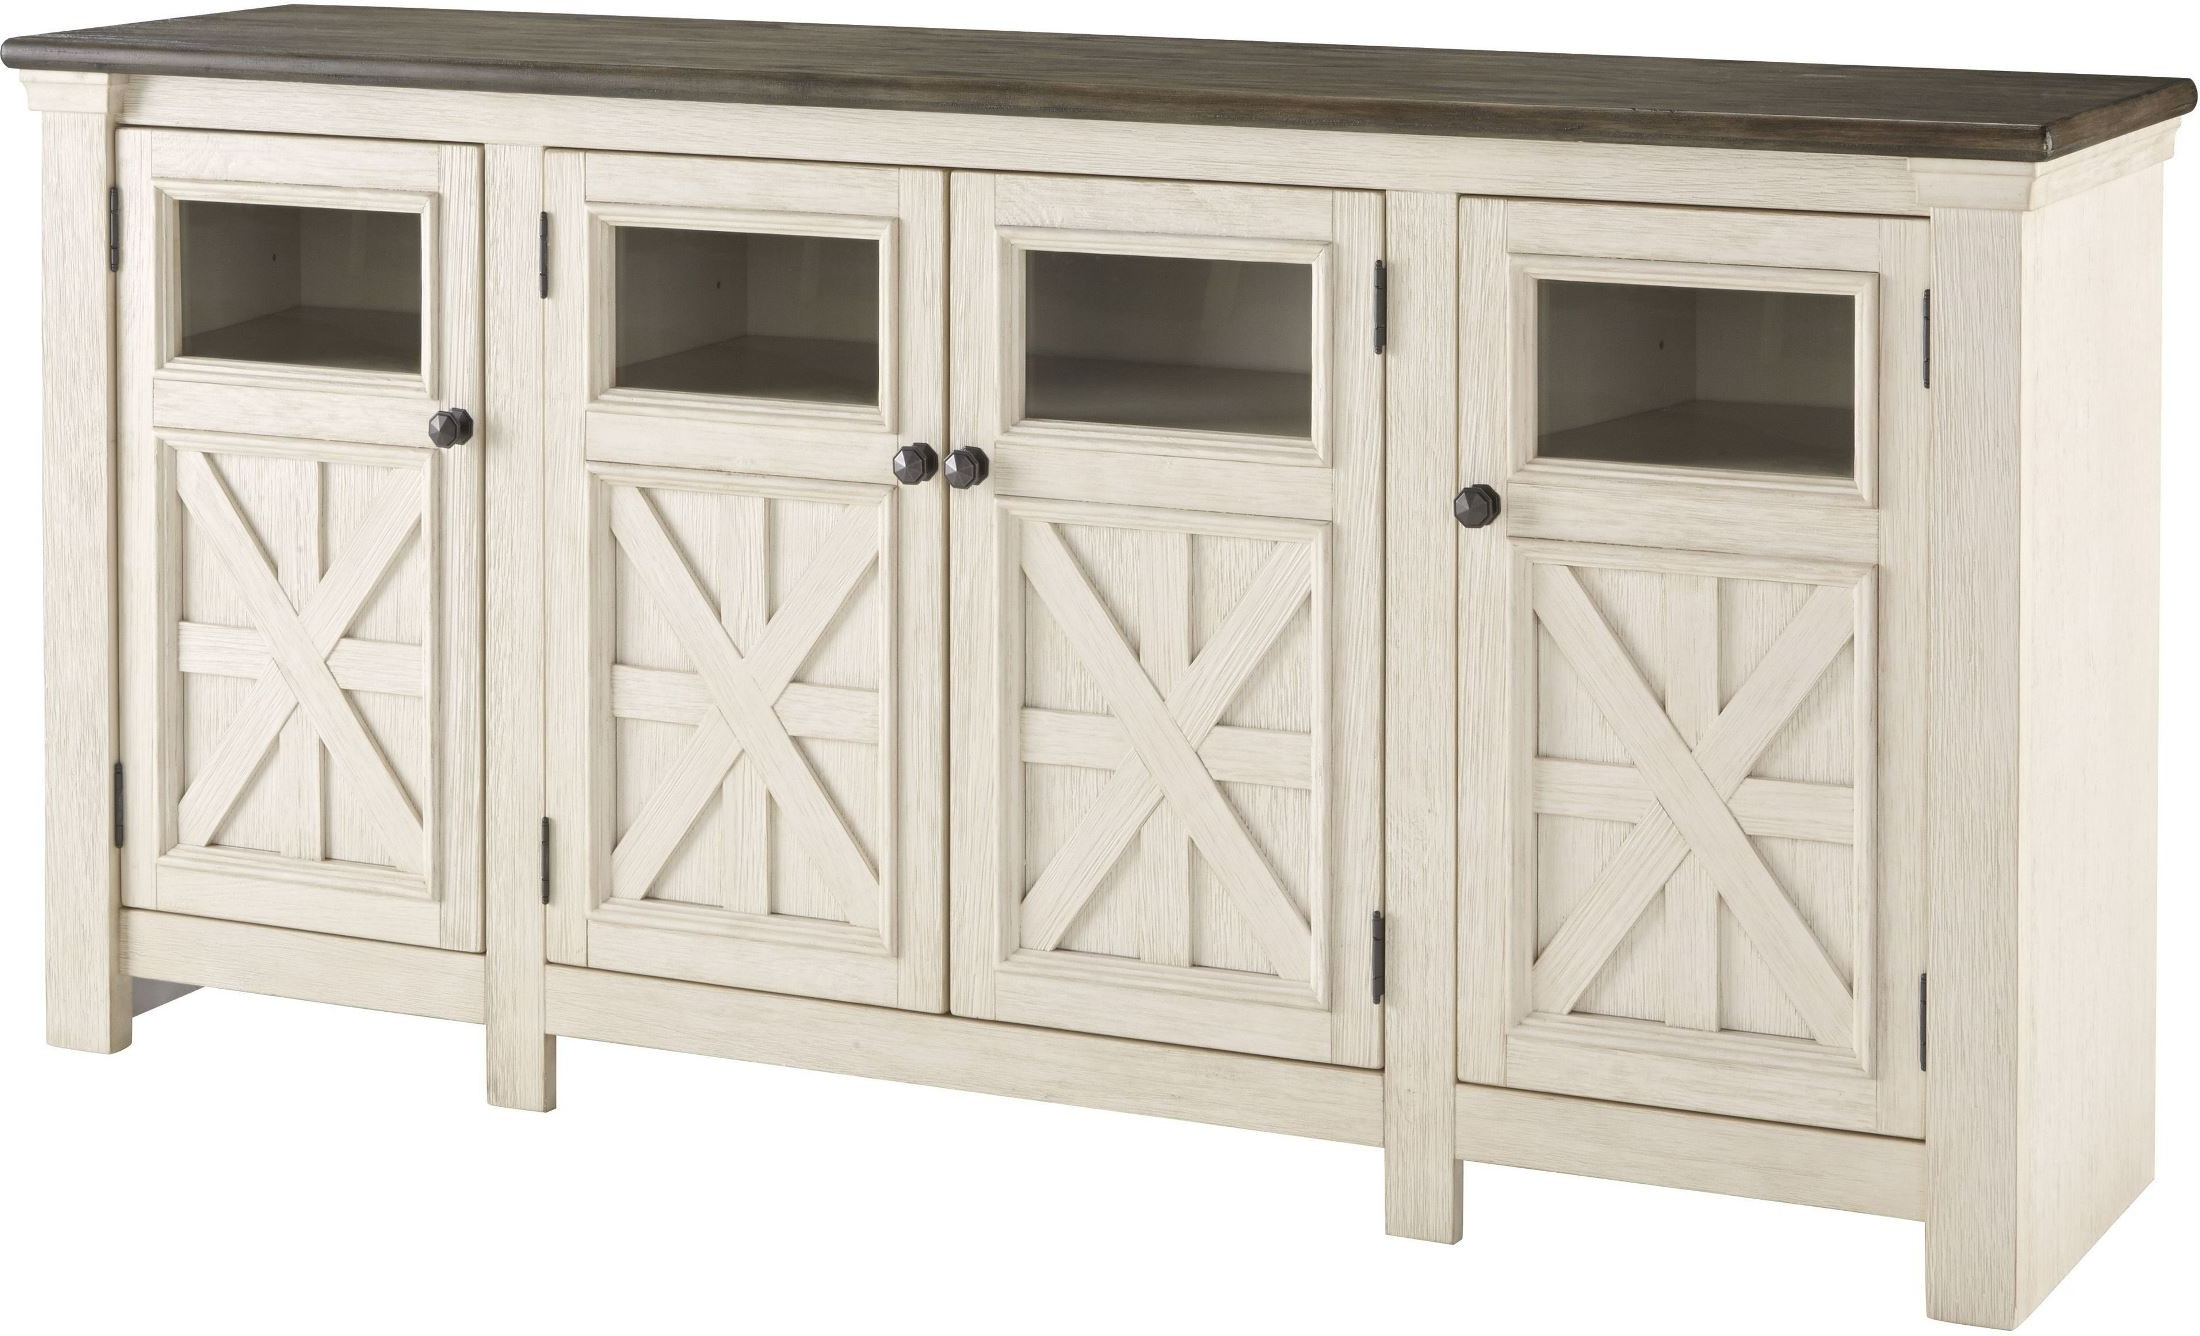 Bolanburg Weathered Gray Extra Large Tv Stand From Ashley | Coleman Inside Vista 60 Inch Tv Stands (Gallery 17 of 20)